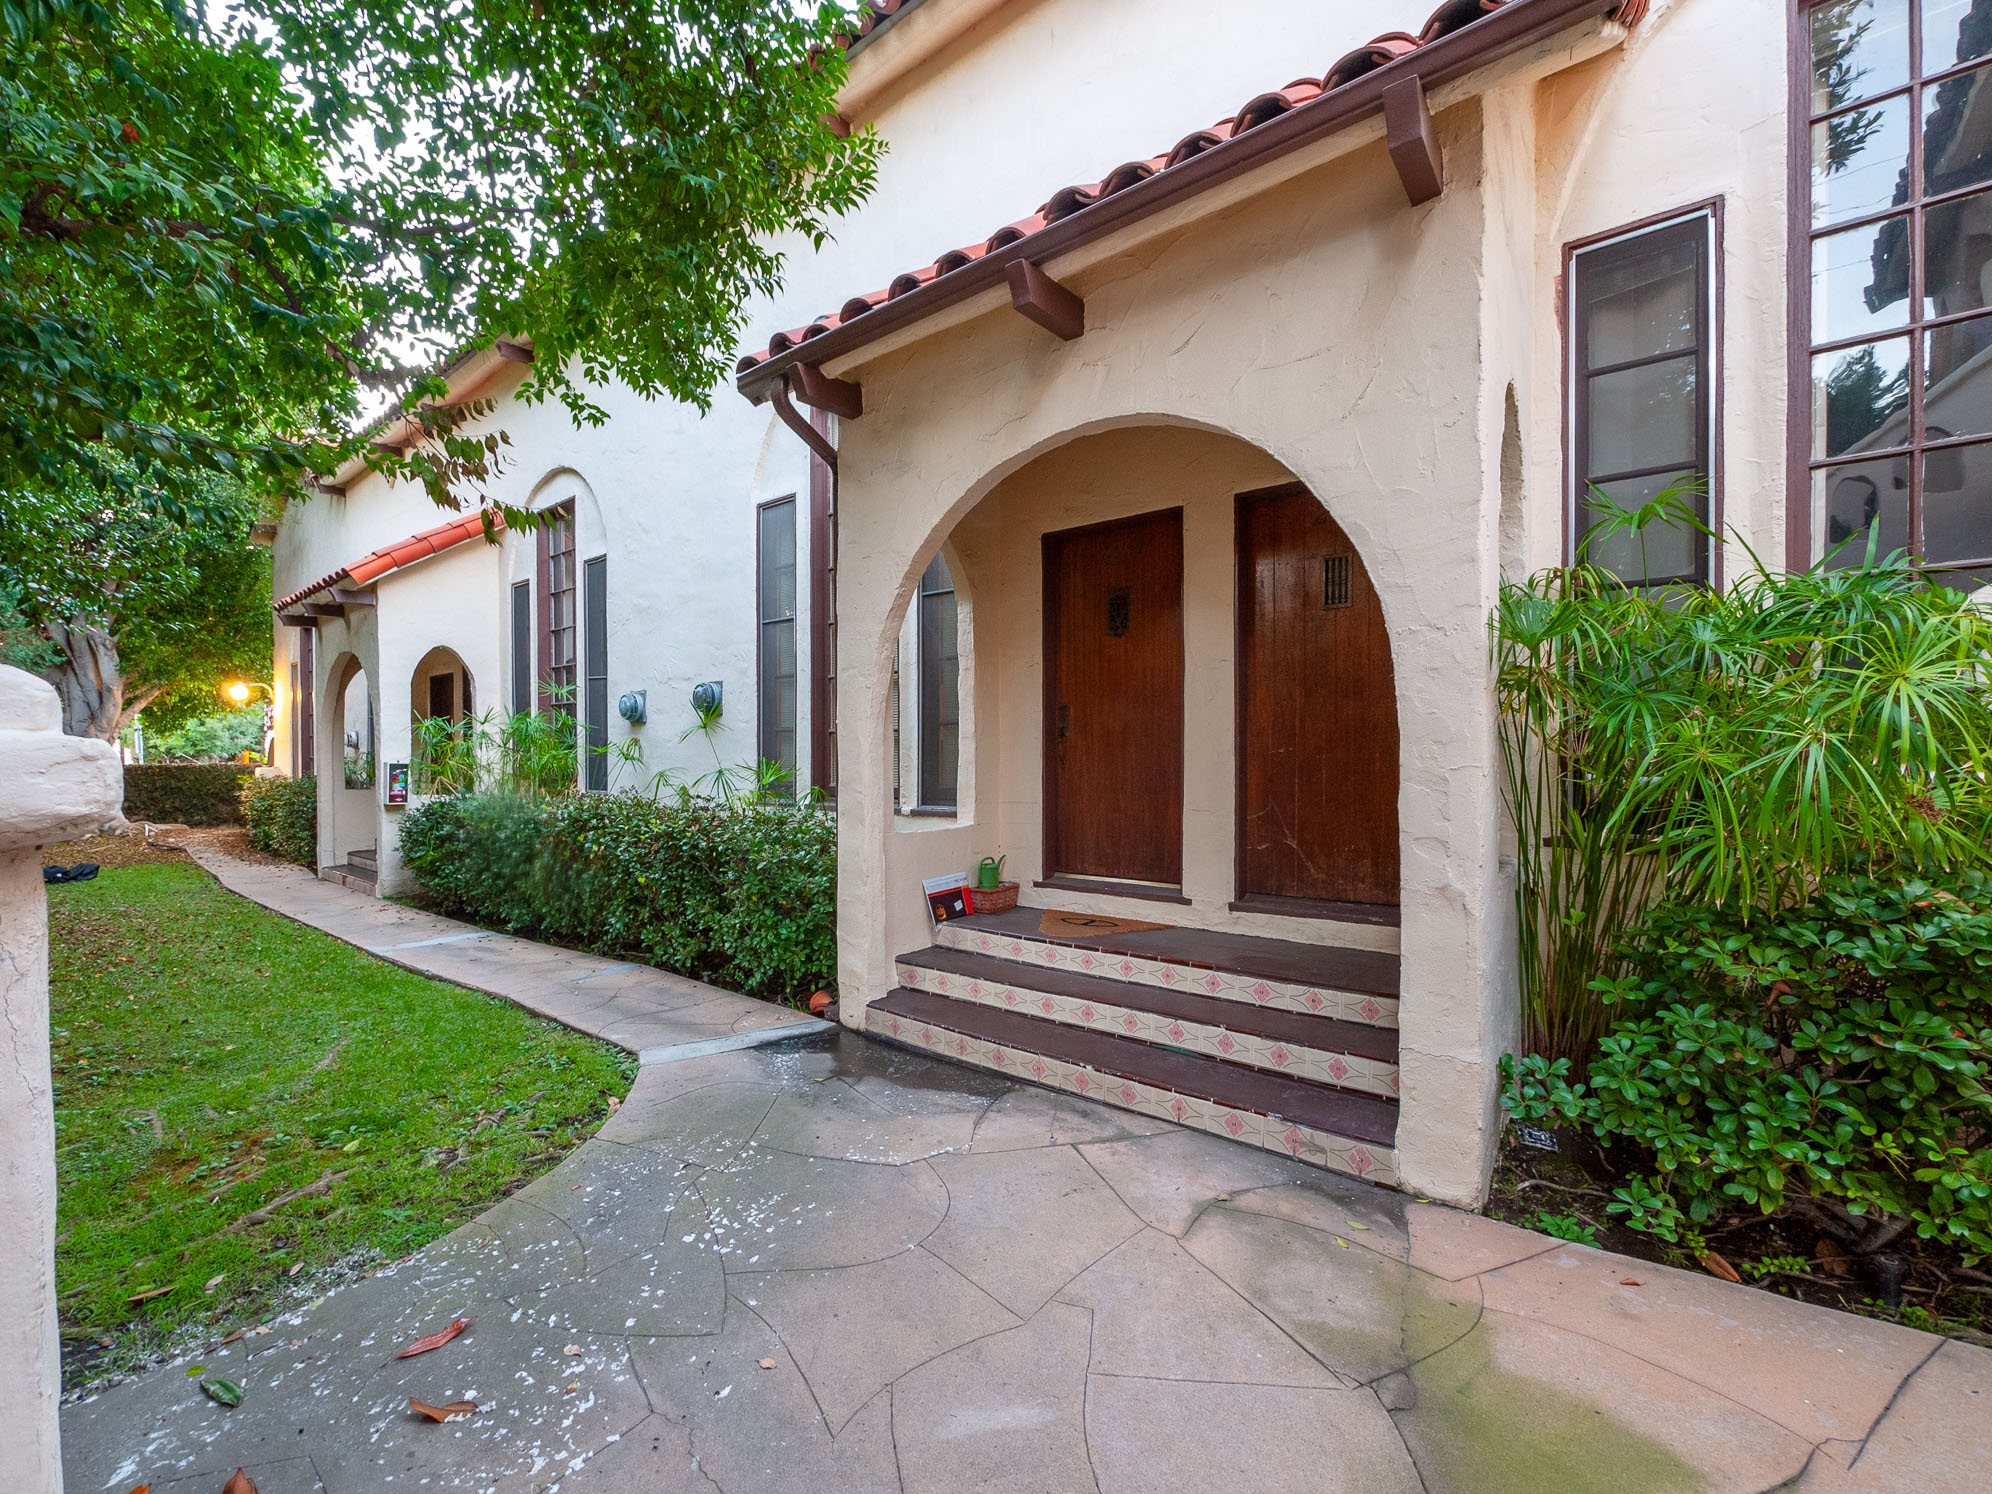 Breathtaking Townhouse w/ Lofted Second Room! Loads of Charm!